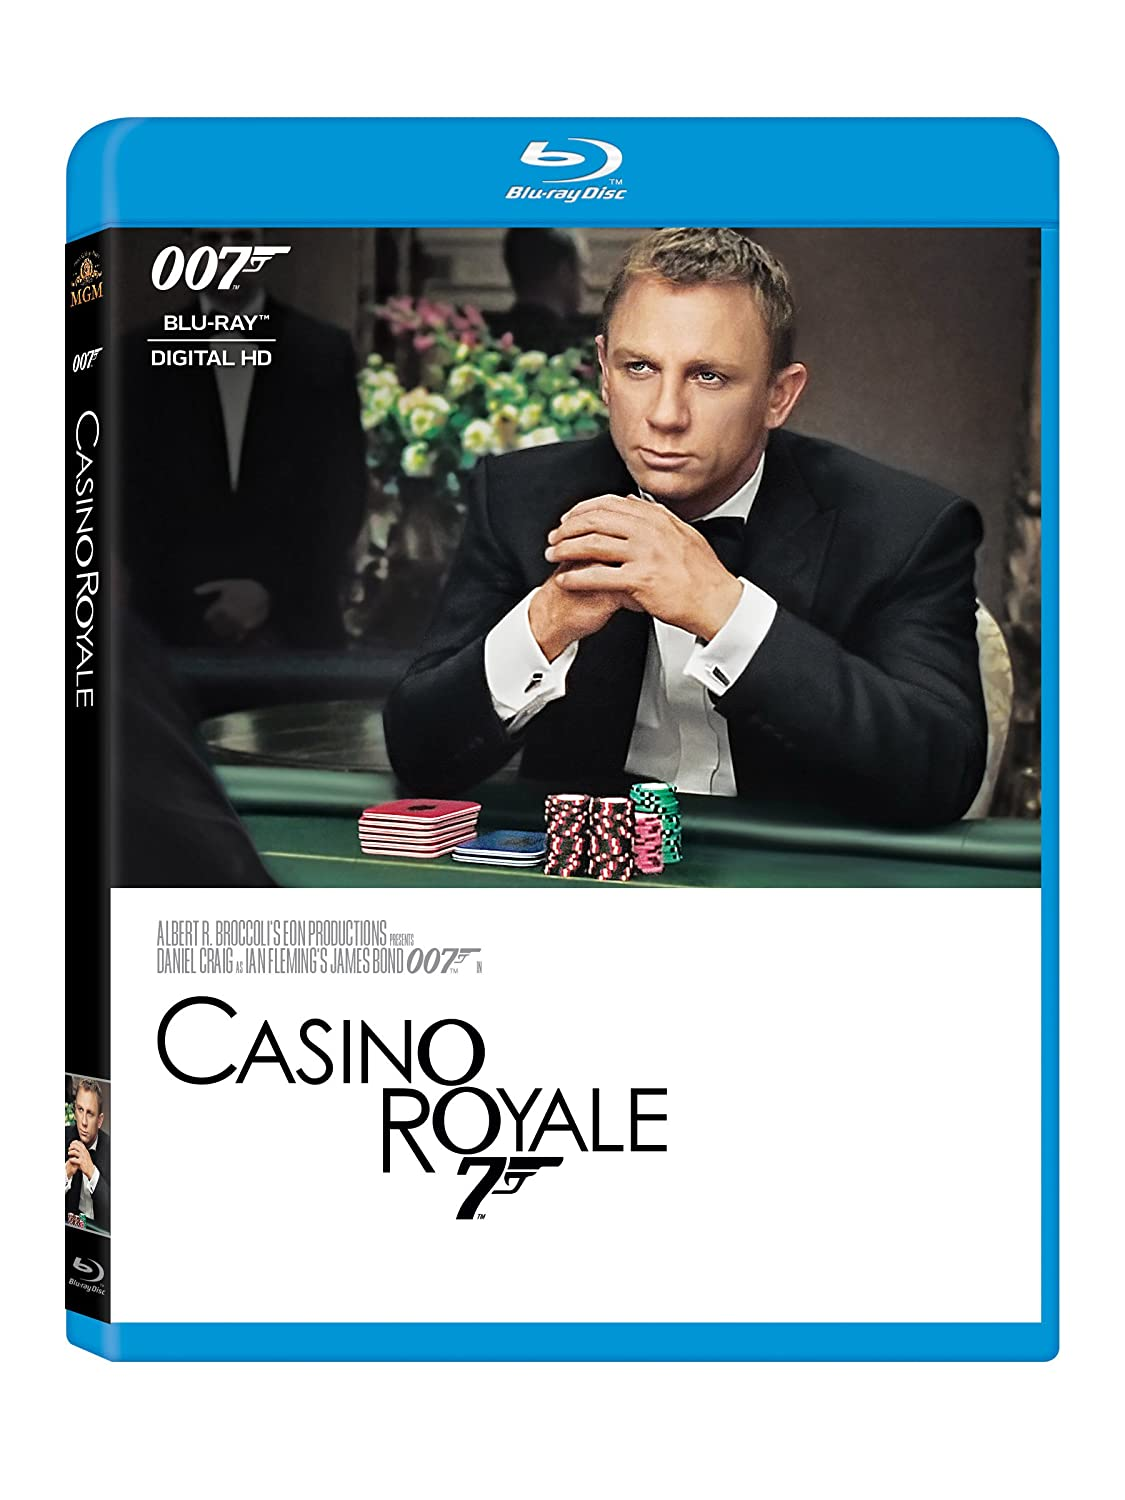 Full casino royale electronic books online online casino poker gambling